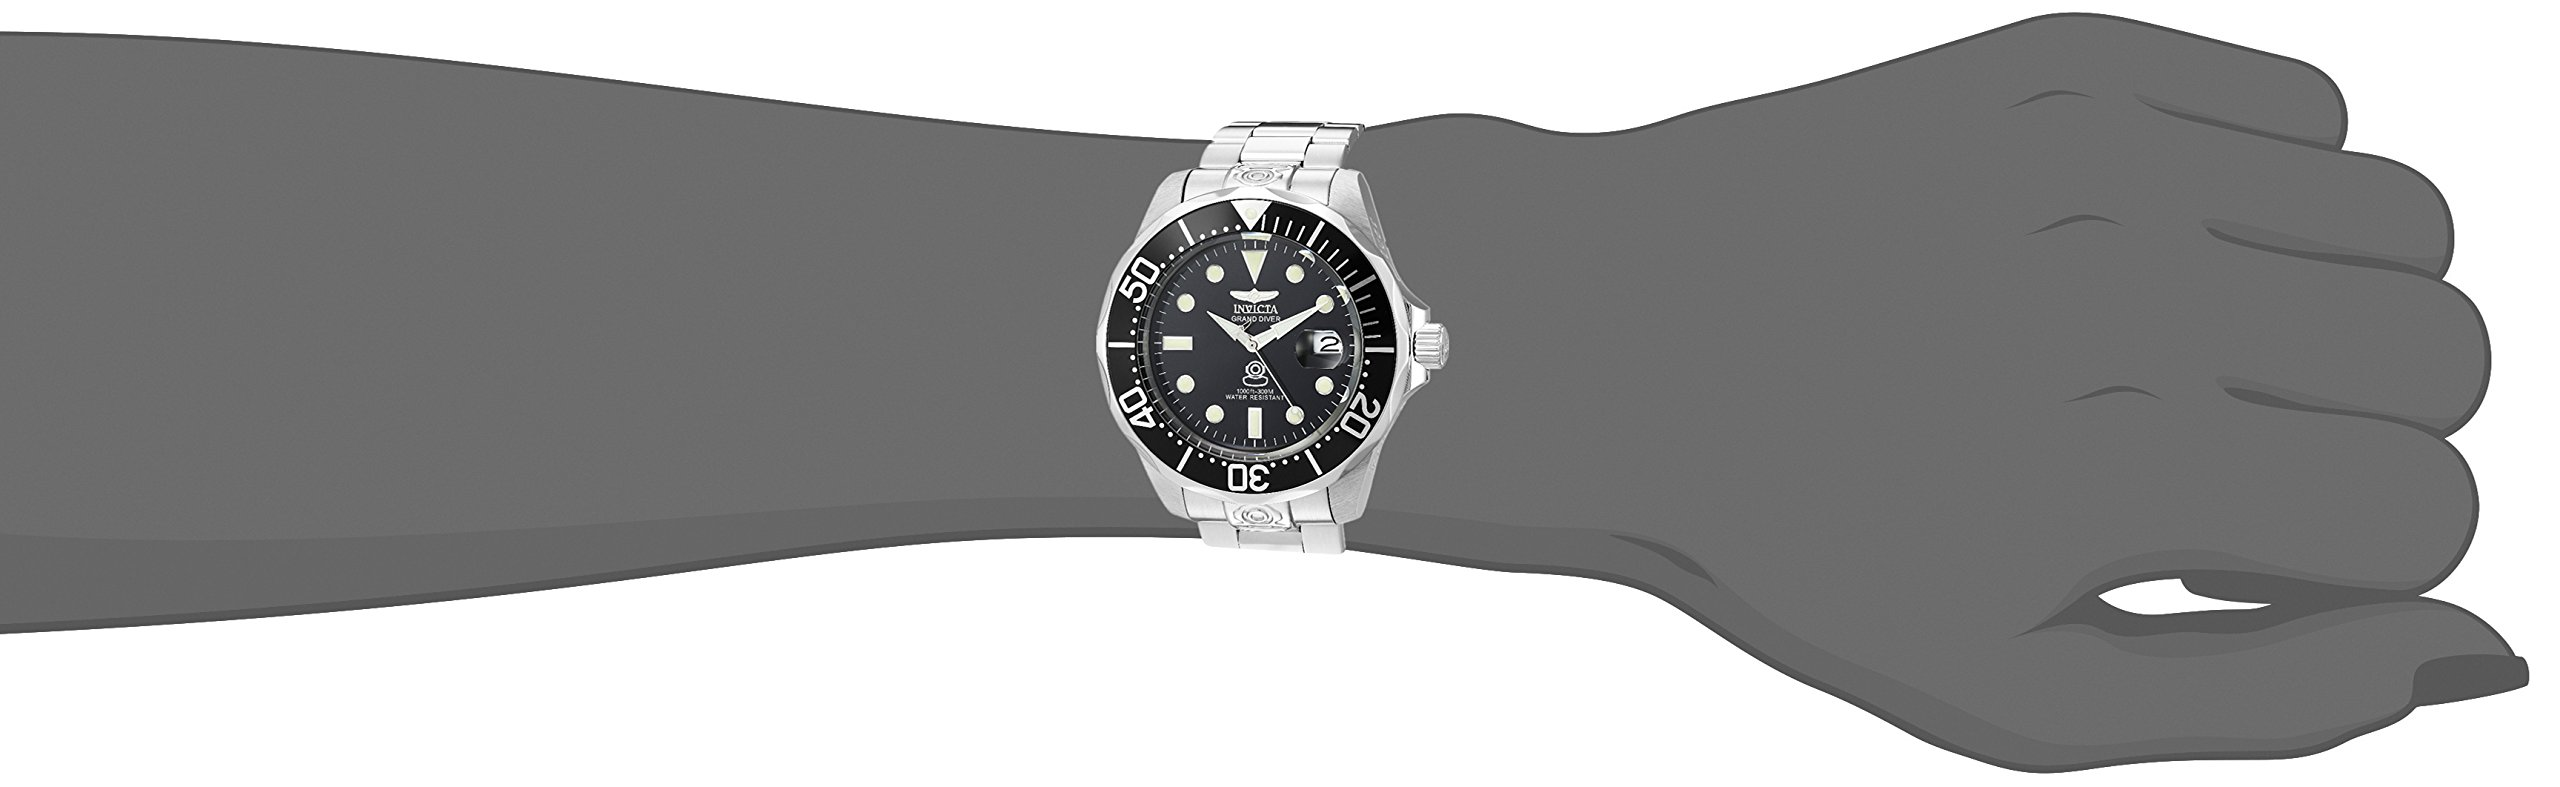 Invicta Men's 3044 Stainless Steel Grand Diver Automatic Watch, Silver/Black by Invicta (Image #5)